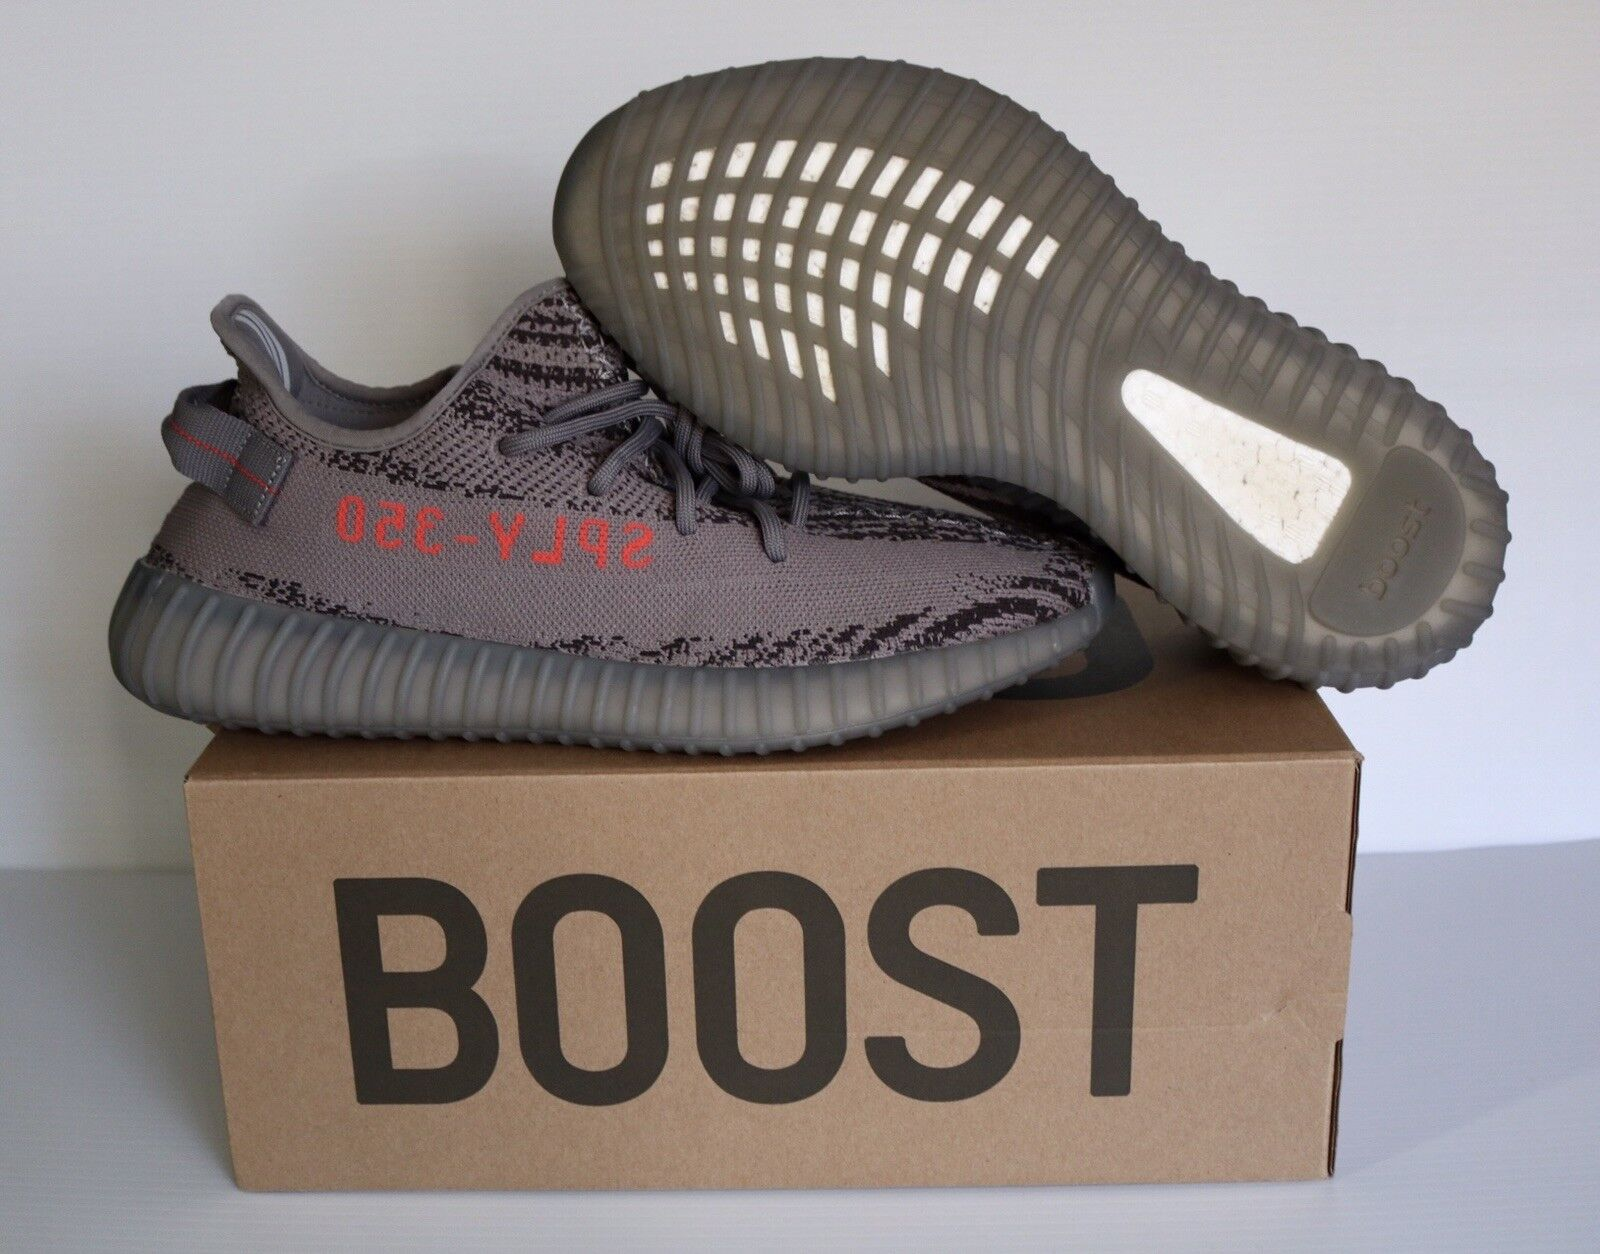 ADIDAS YEEZY BOOST 350 BELUGA 2.0 SIZE 11 MENS WITH RECIEPT 100% AUTHENTIC